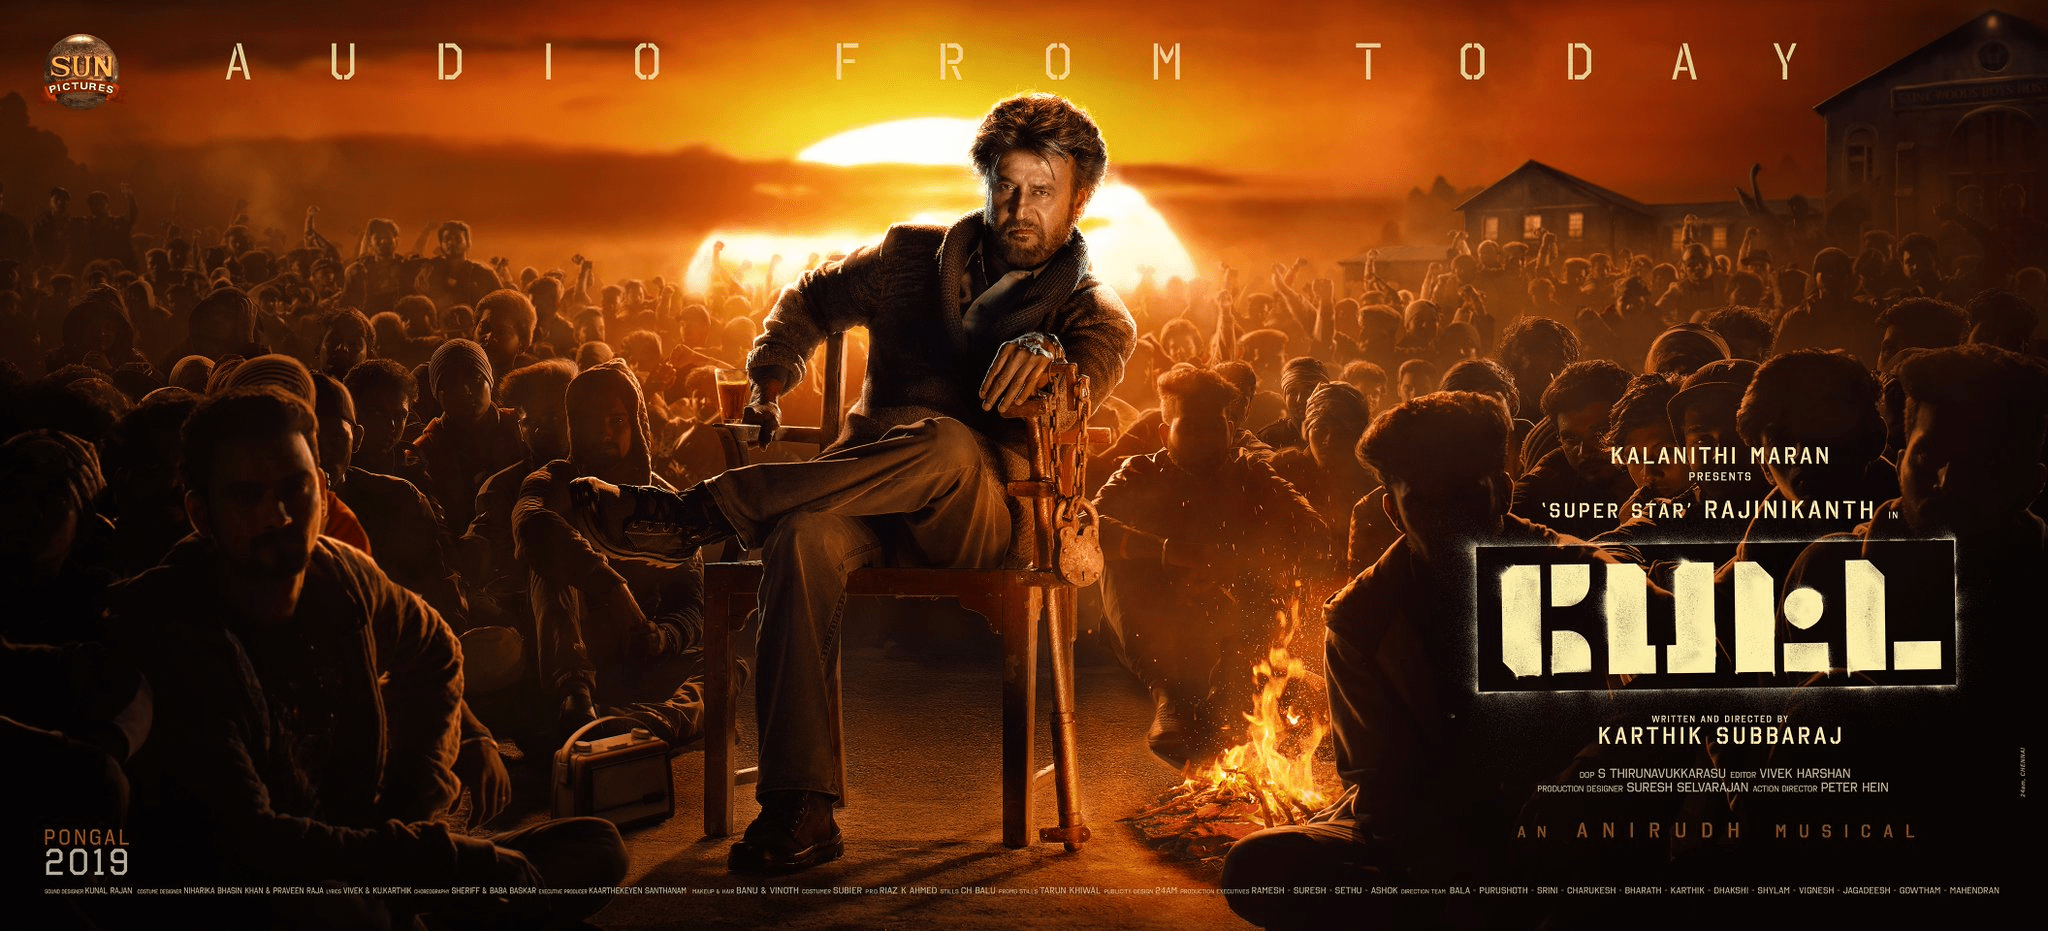 Petta Movie Audio From Today HD Poster